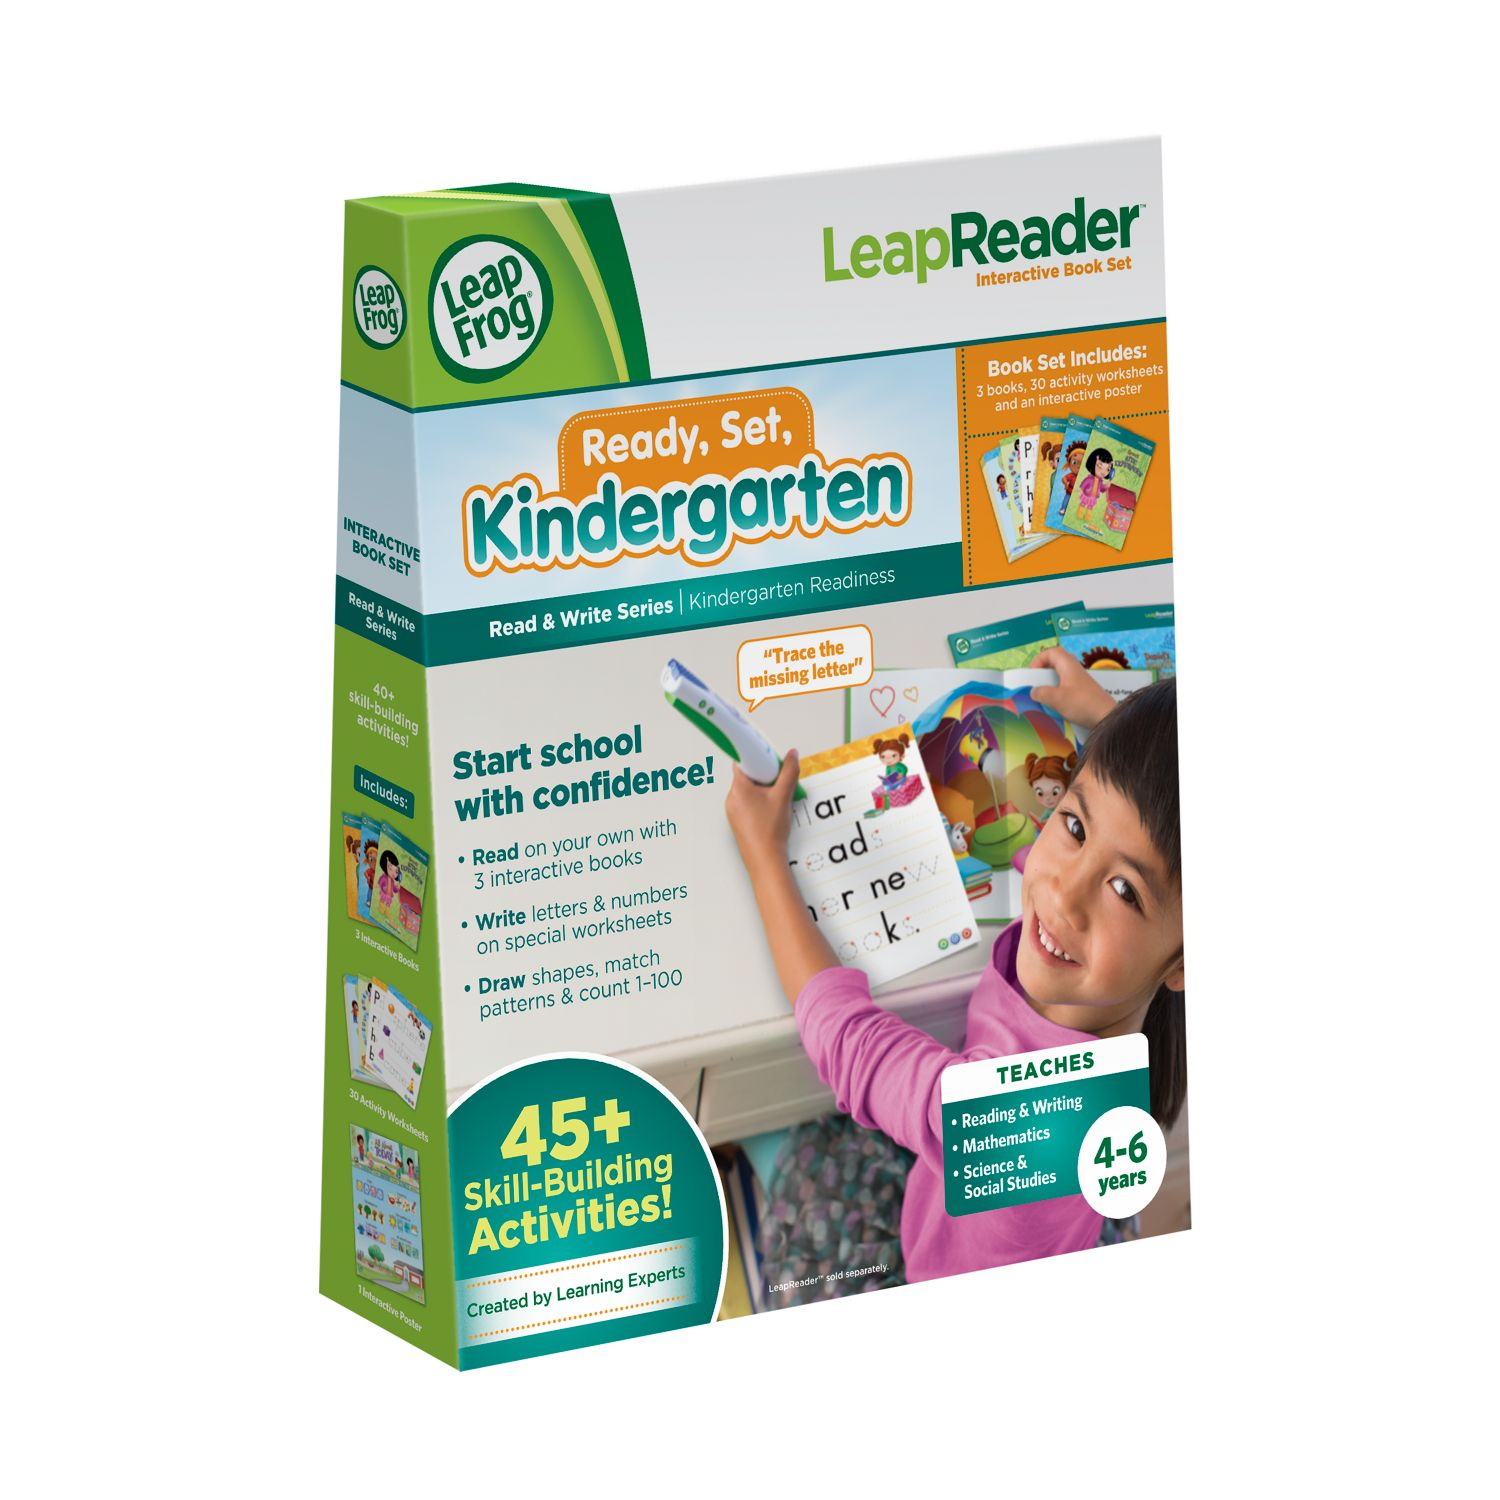 leapreader read and write activity set